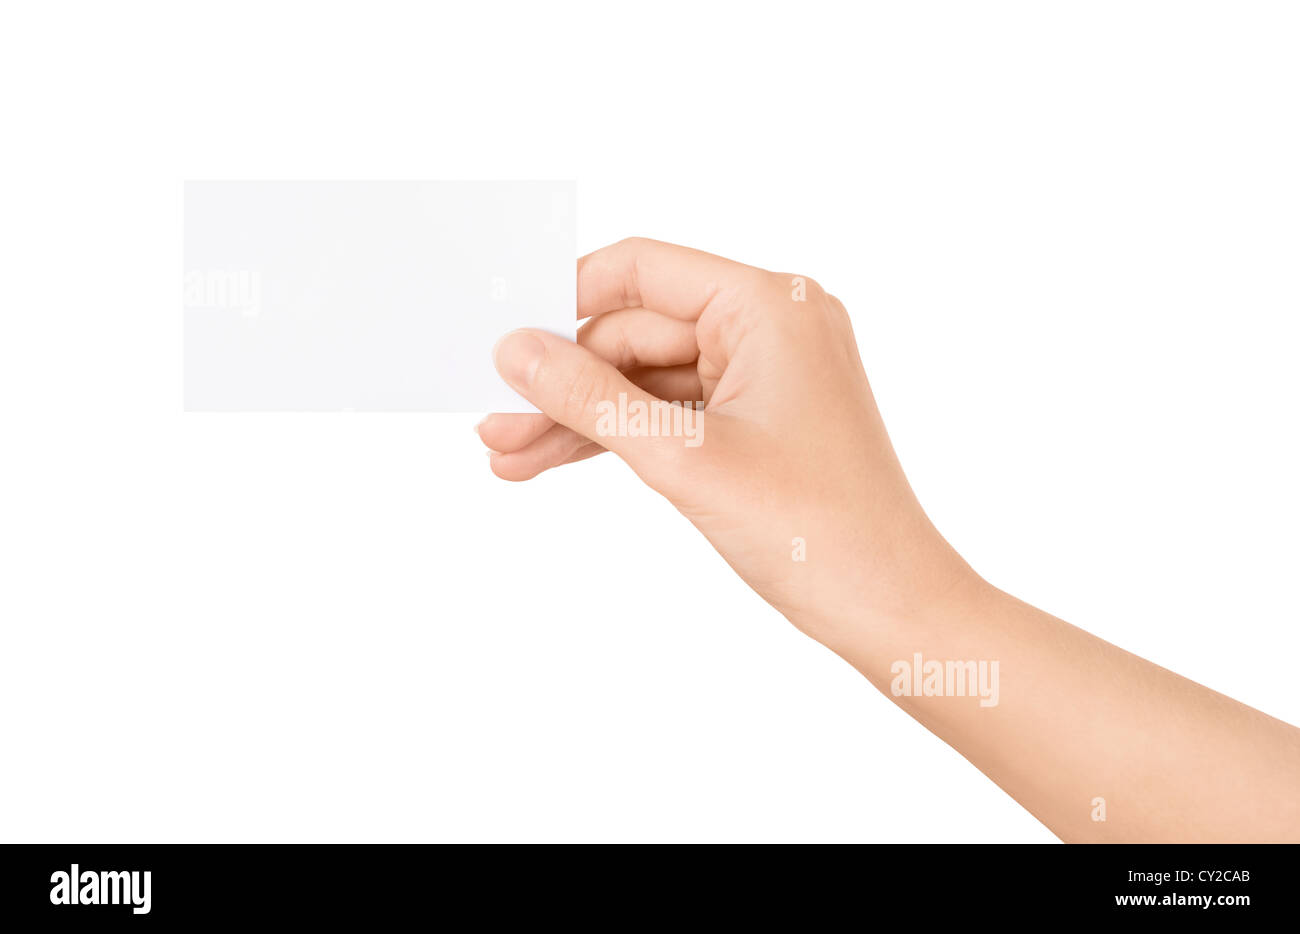 Woman holding blank business card in hand. Isolated on white. - Stock Image